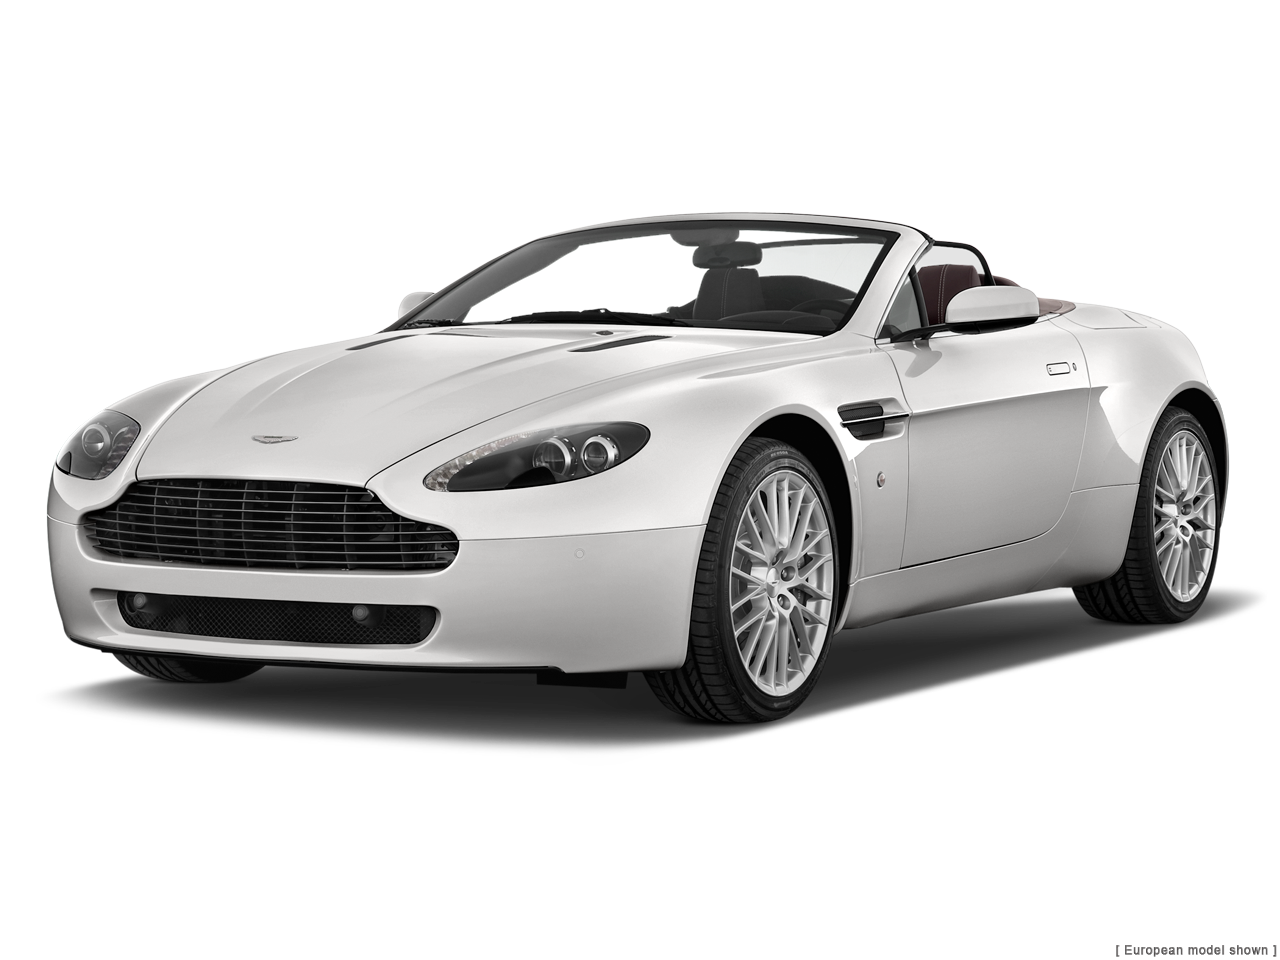 Clipart convertible car graphic freeuse 28+ Collection of Aston Martin Clipart | High quality, free cliparts ... graphic freeuse